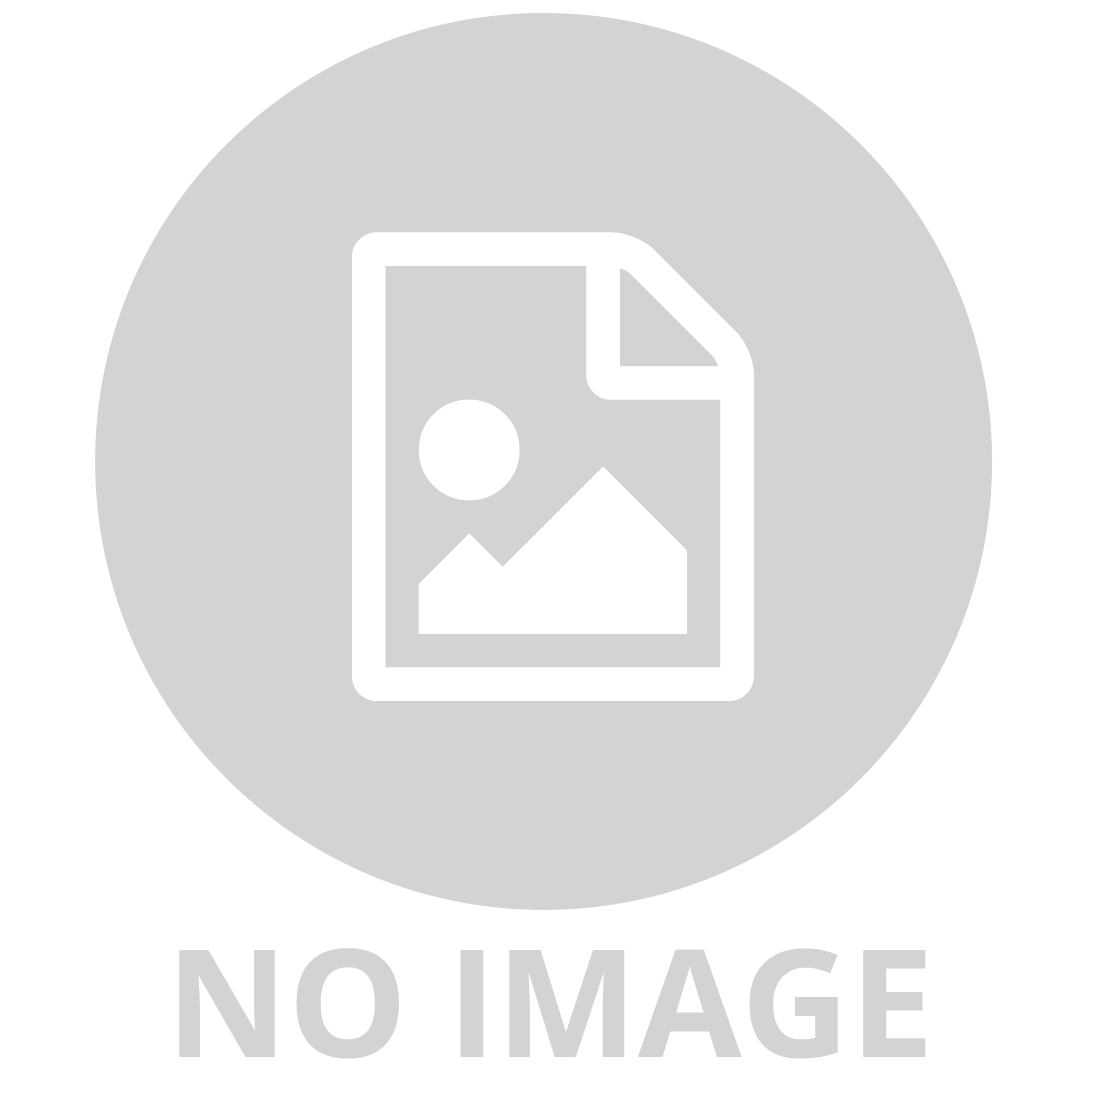 KINDI KIDS- SERIES 3 DRESS UP DOLL- CINDI POPS